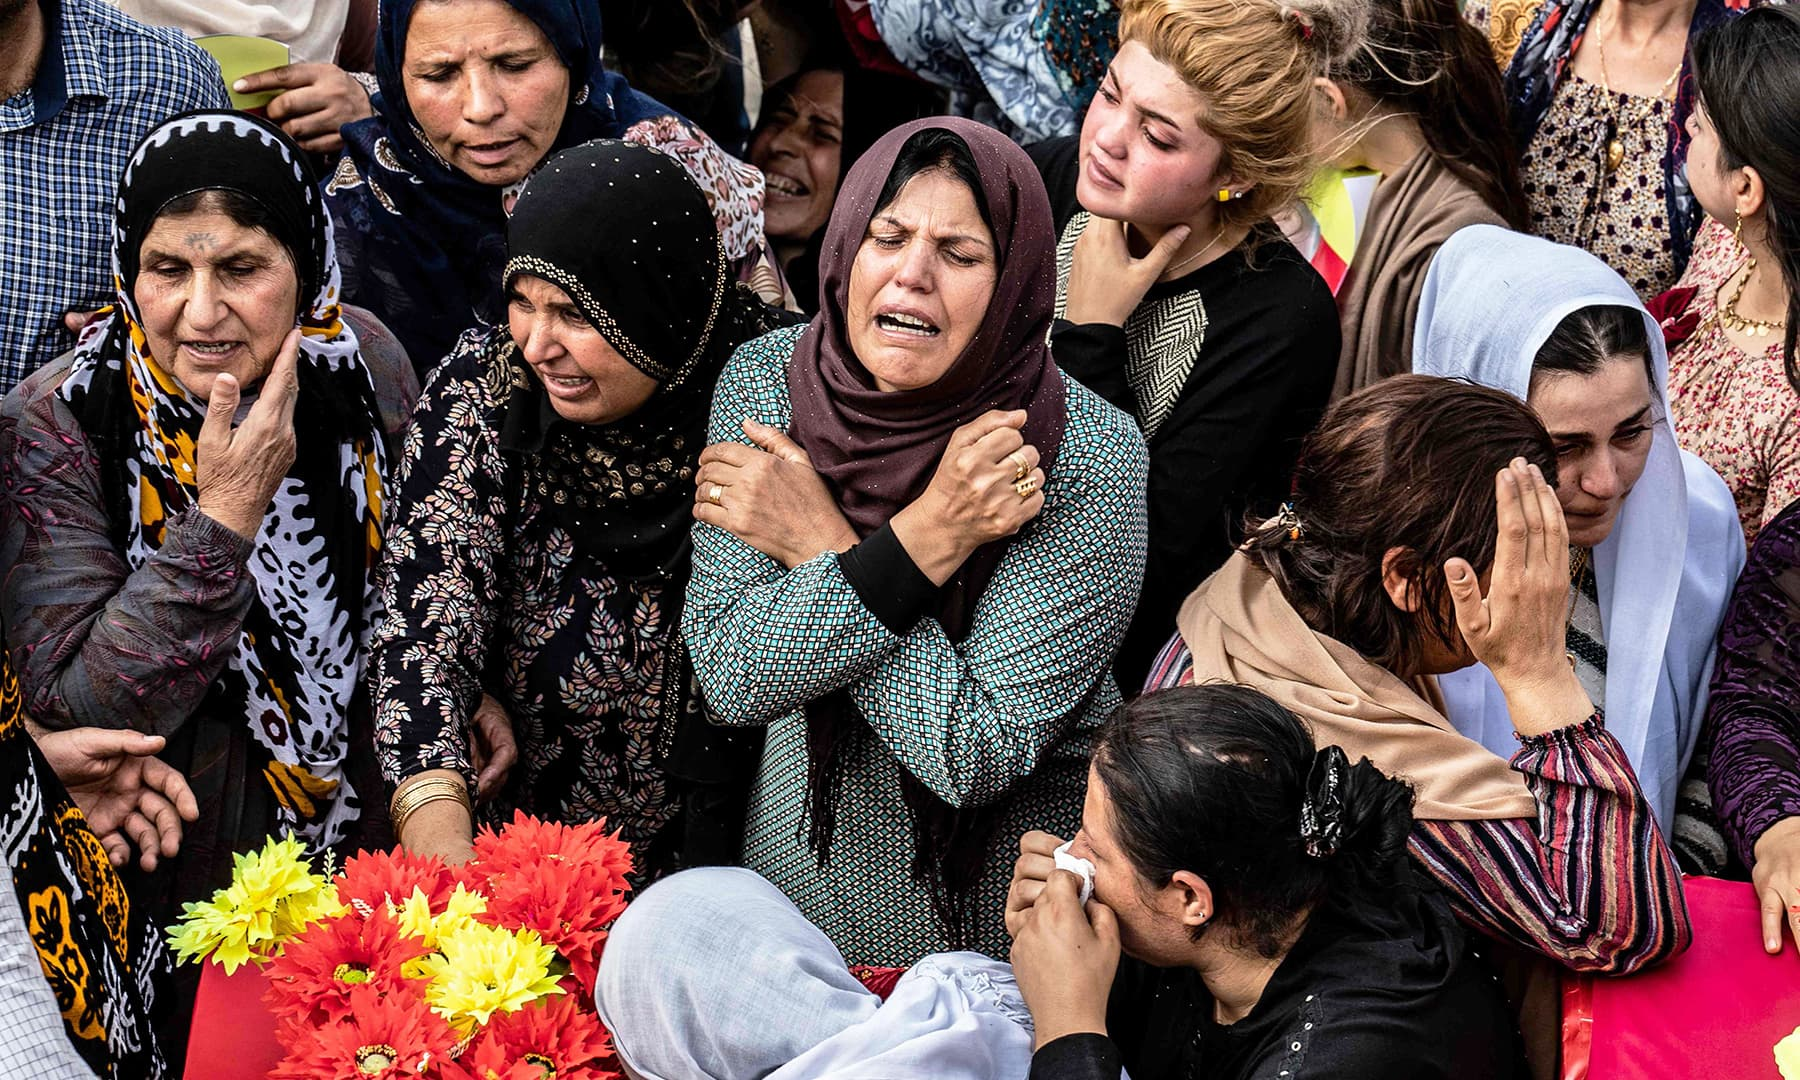 Mourners attend the funeral of civilians and fighters, who died during attacks by Turkish-led forces on the border town of Ras al-Ain, in a cemetary in Tal Tamr, near the Syrian Kurdish town of Ras al-Ain, on Saturday. — AFP